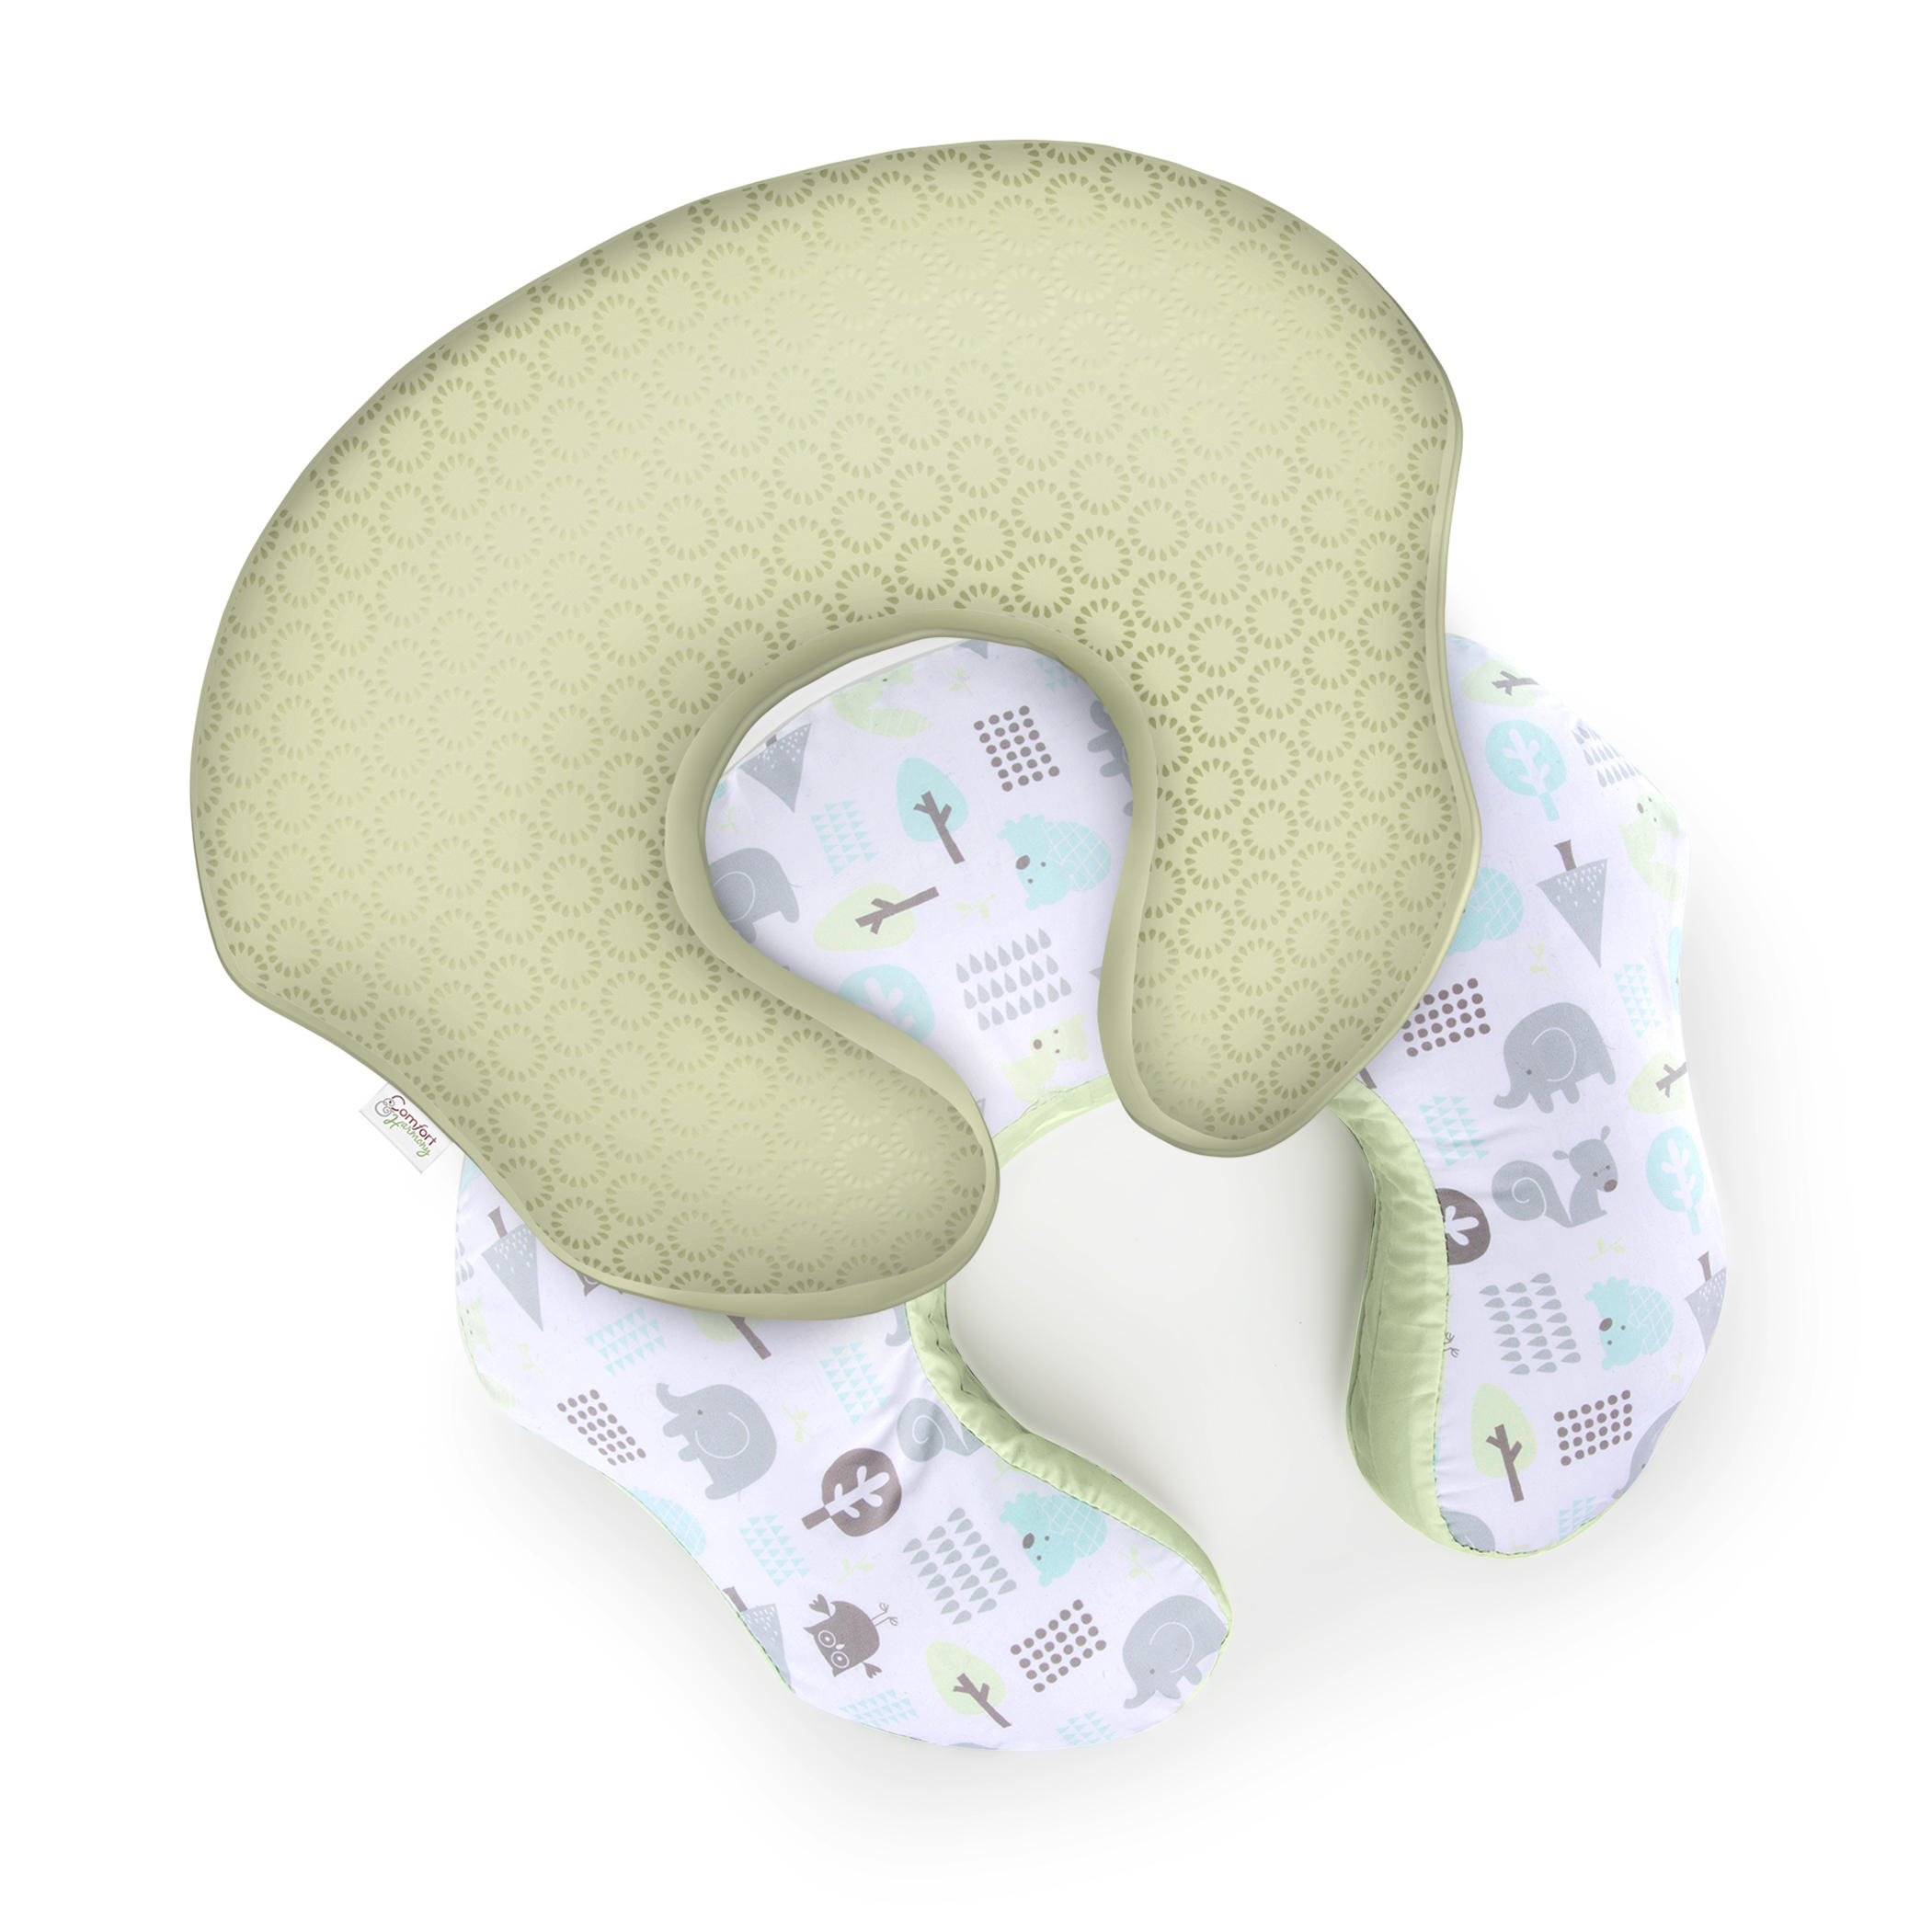 mombo Deluxe™ Nursing Pillow Slipcover - Forest Patterns™